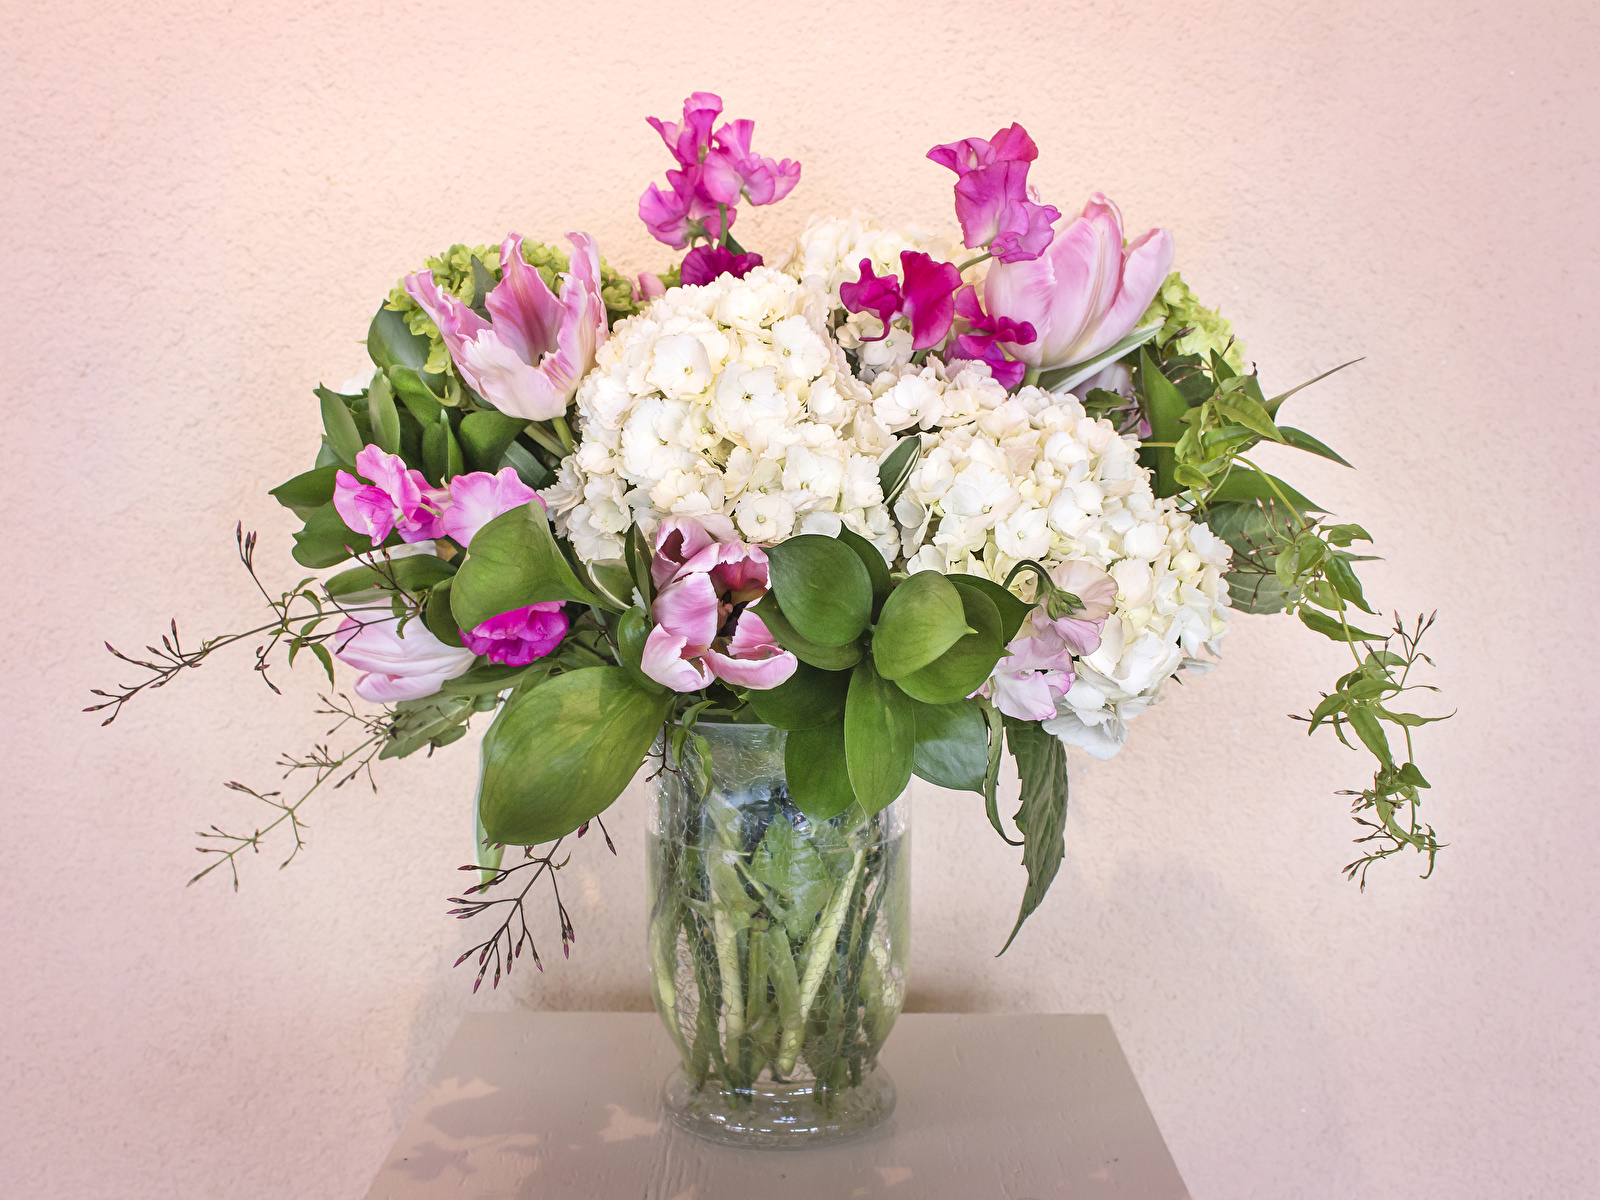 Bouquets_Hydrangea_Colored_background_Vase_525403_1600x1200.jpg